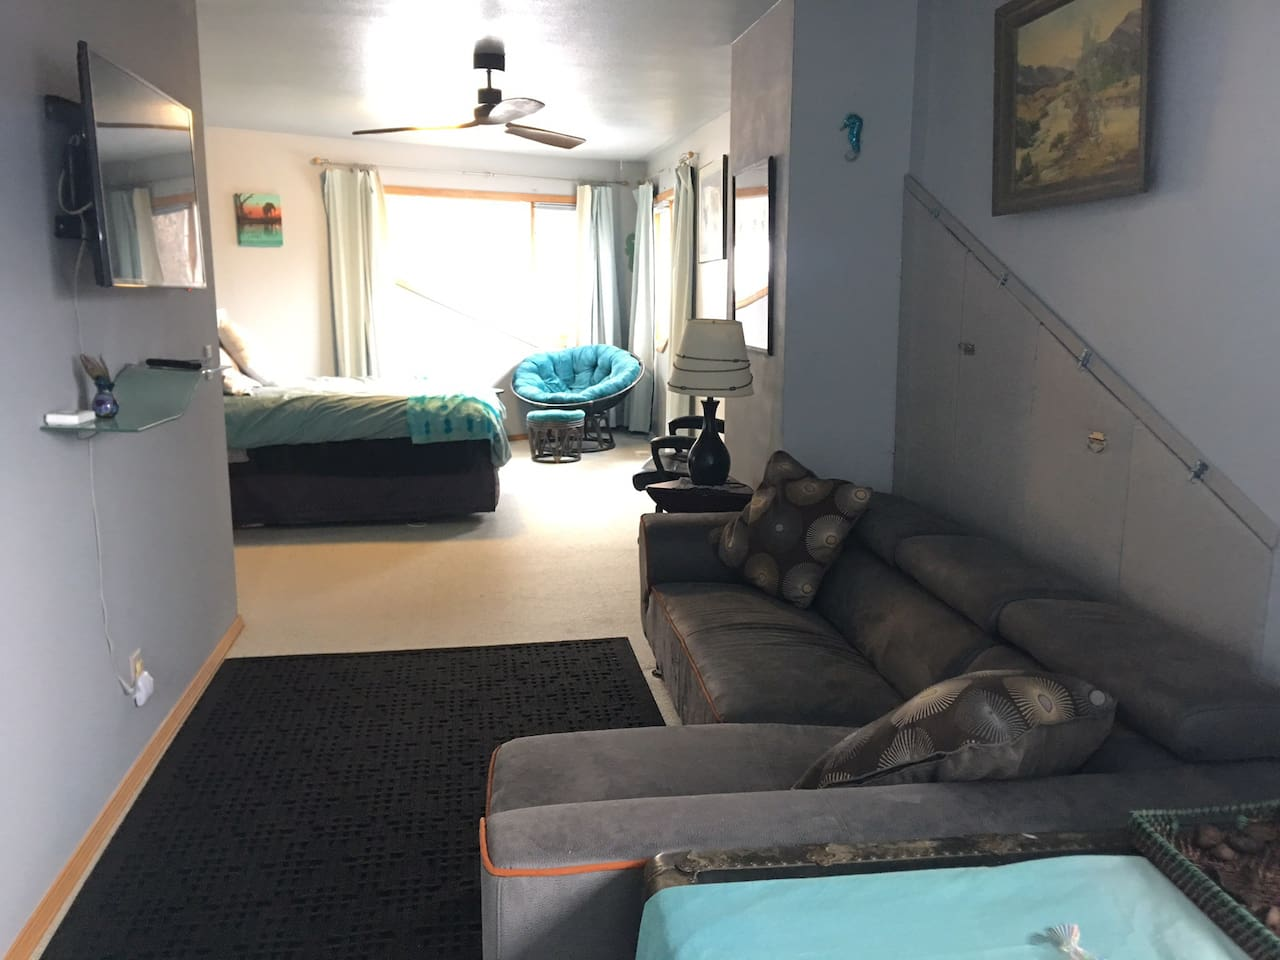 View of the queen bed, leather couch, tv etc